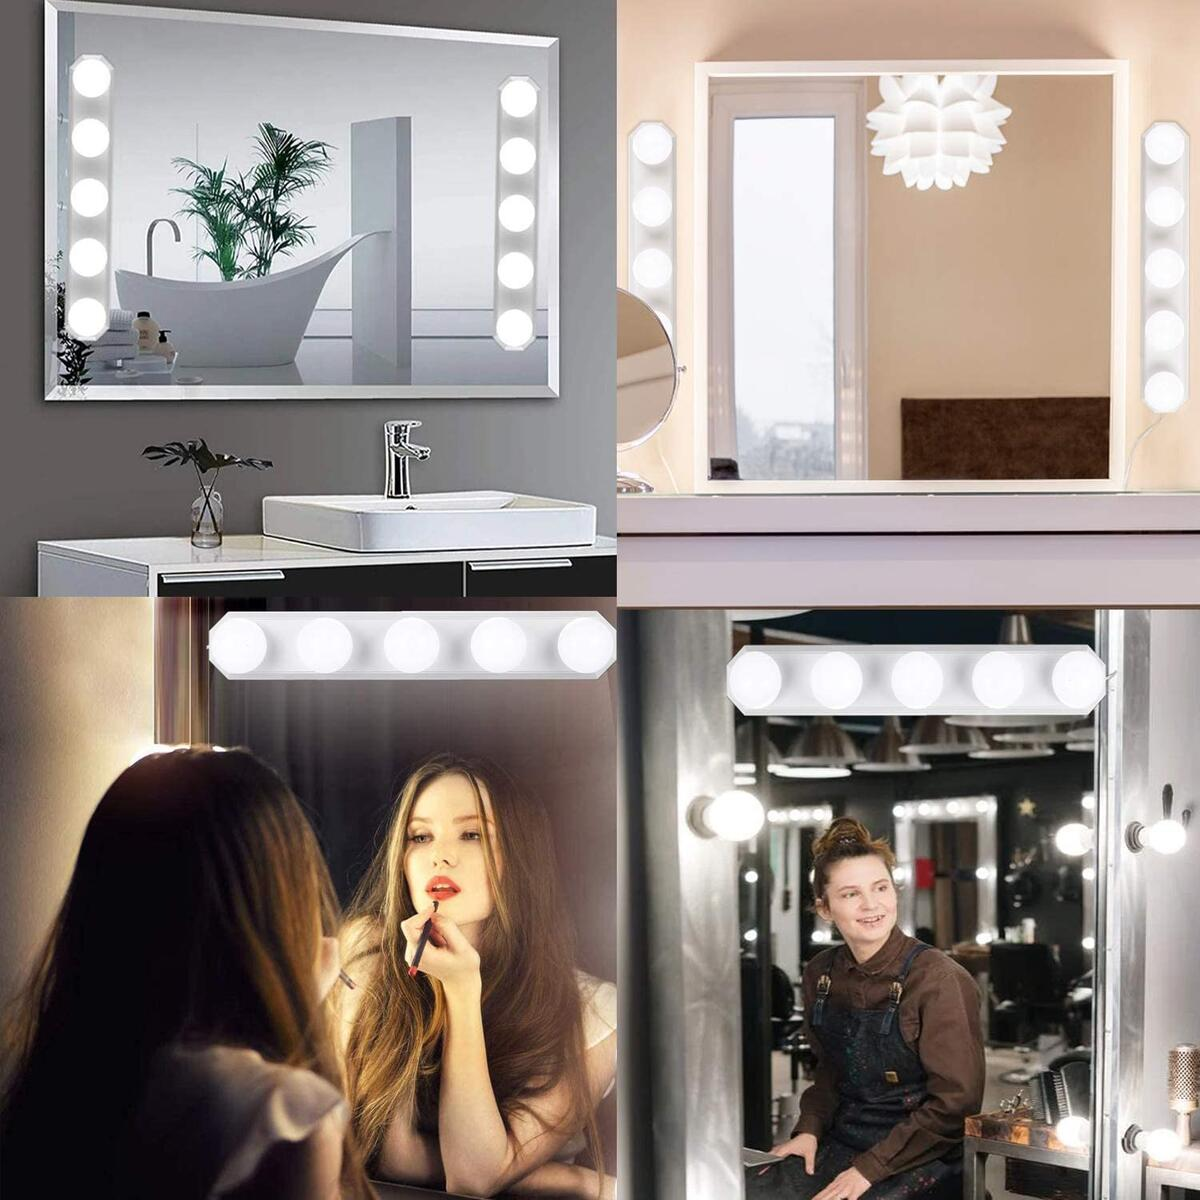 PANLAVIE LED Vanity Mirror Lights Portable 5 Bulbs Makeup Lights 3 Color Modes Dimmable Brightness USB Powered Cosmetic Light for Bathroom Mirrors Dressing Room Bedroom Cabinet